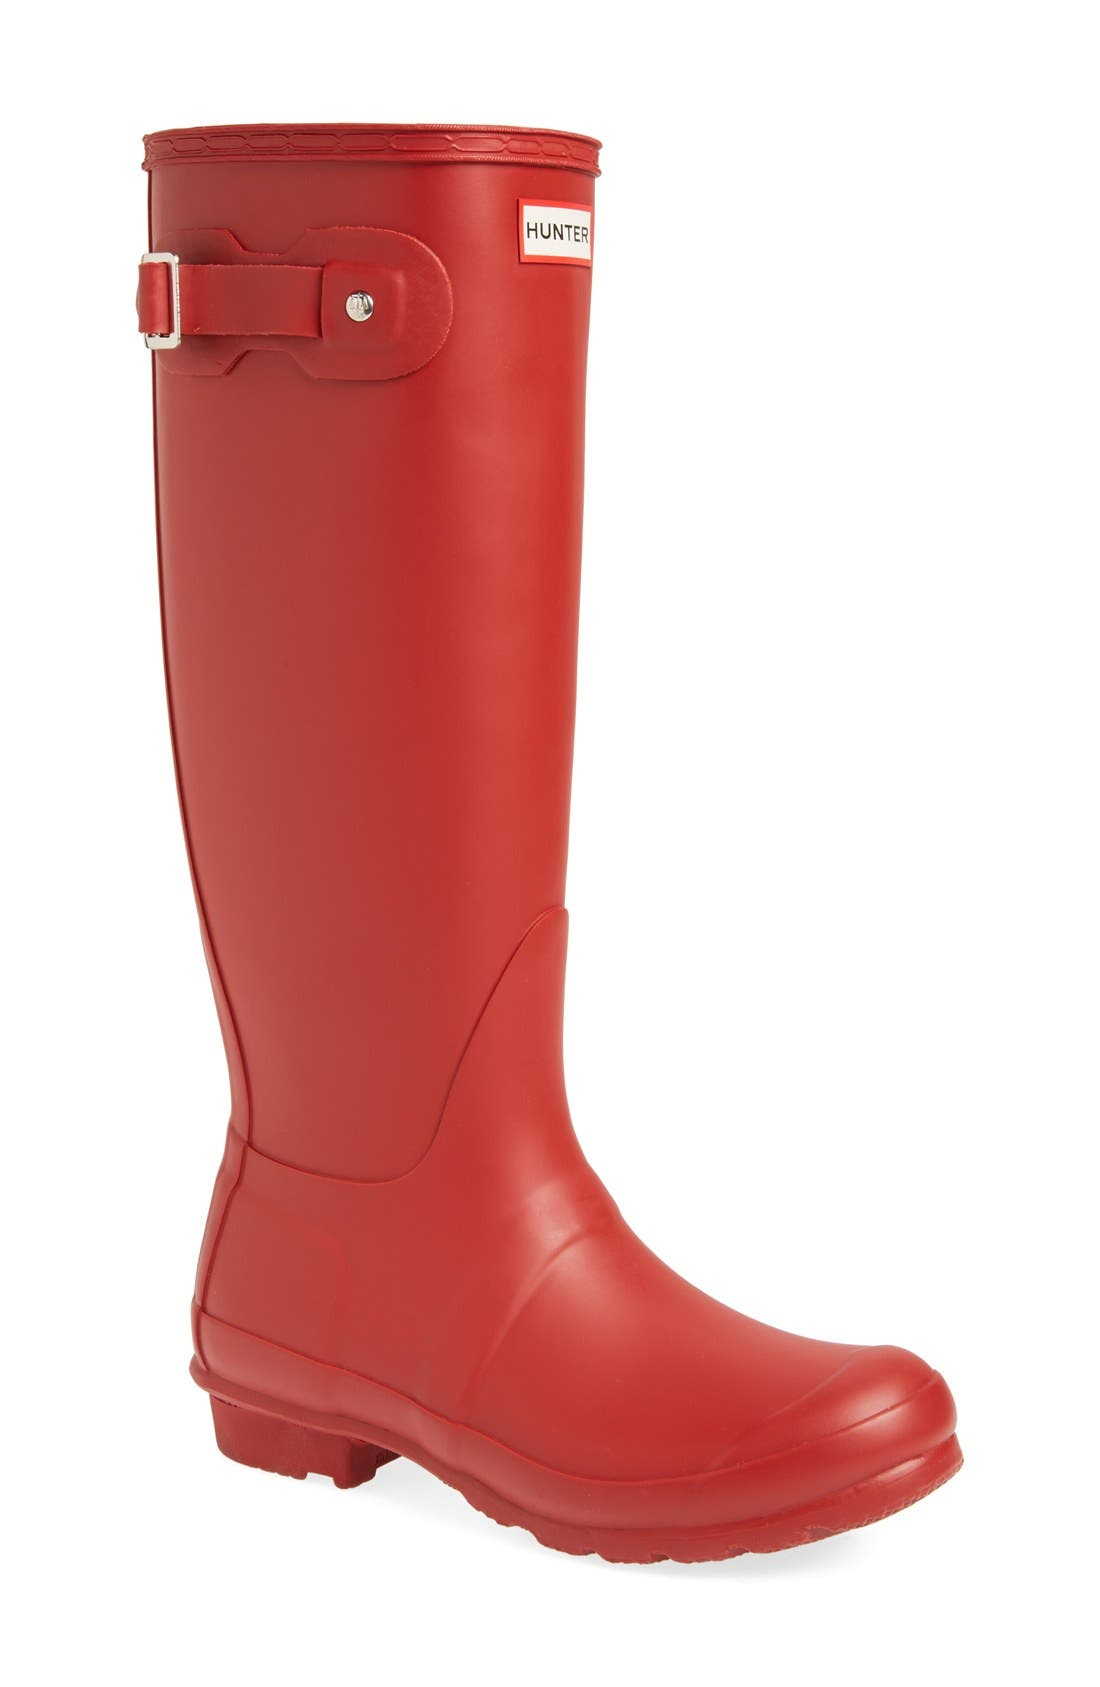 Main Image - Hunter 'Original Tall' Rain Boot (Women)